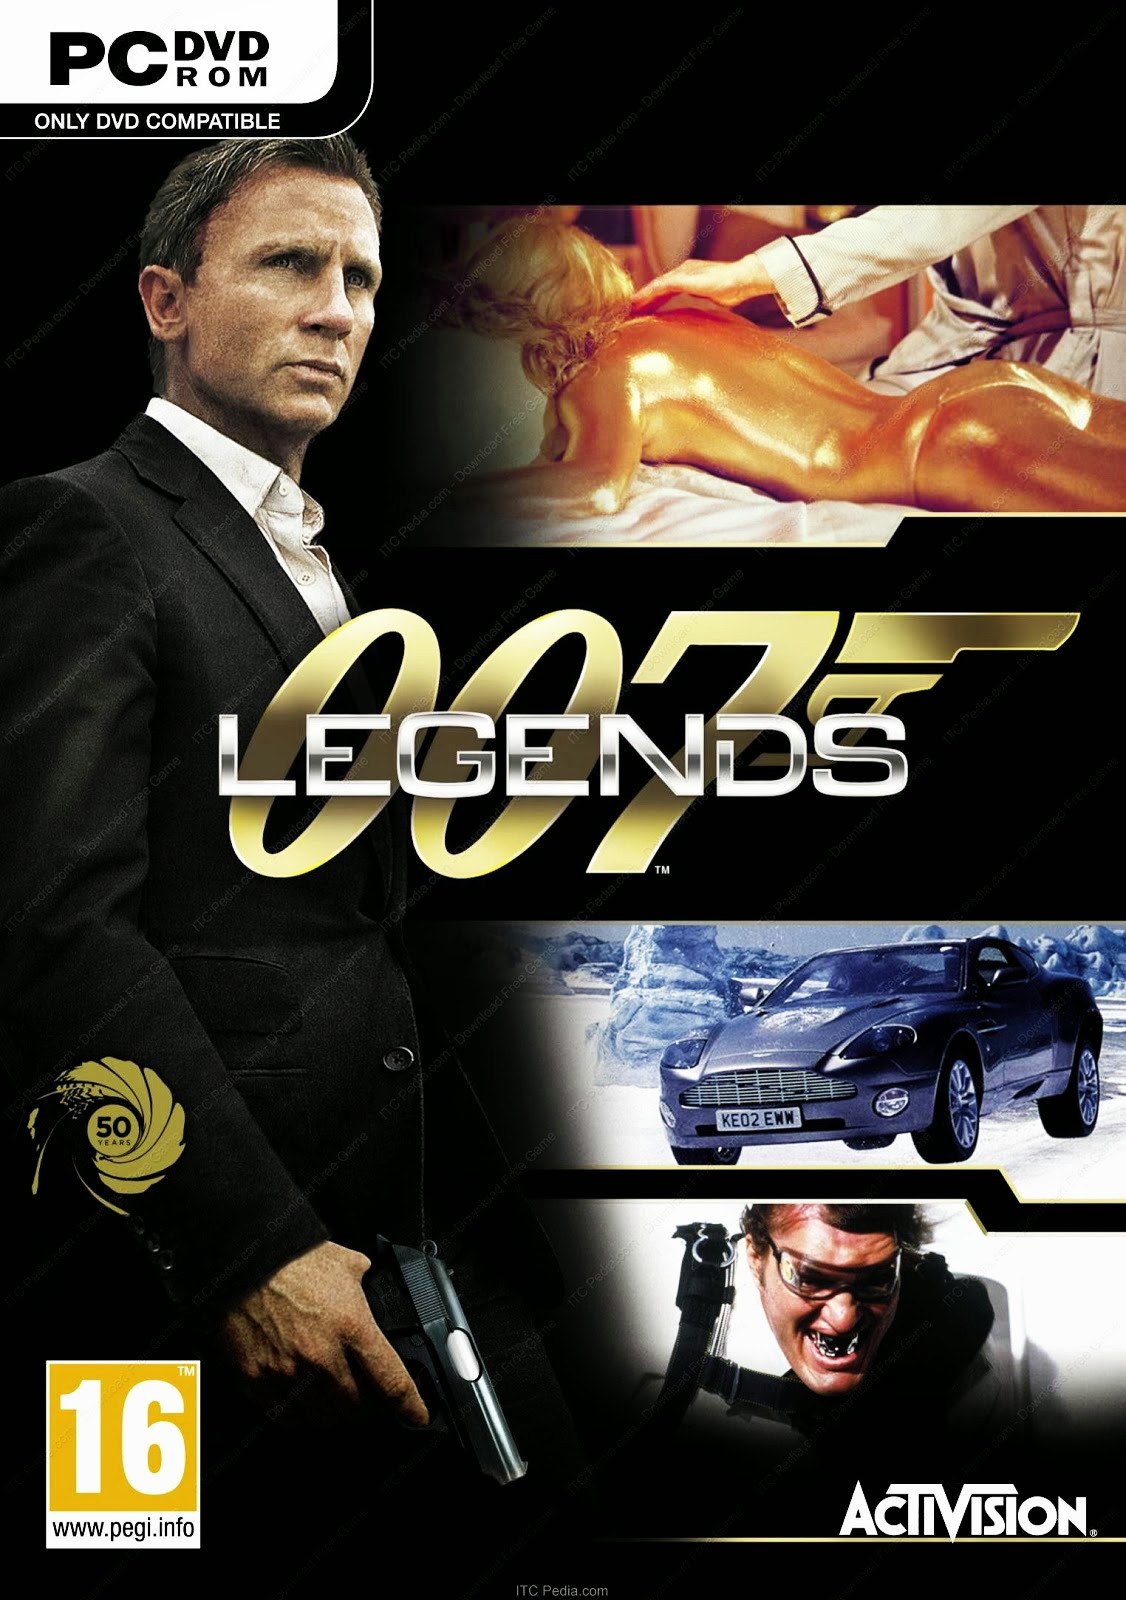 007 LEGENDS 2012 PC Game Full Version Free Download